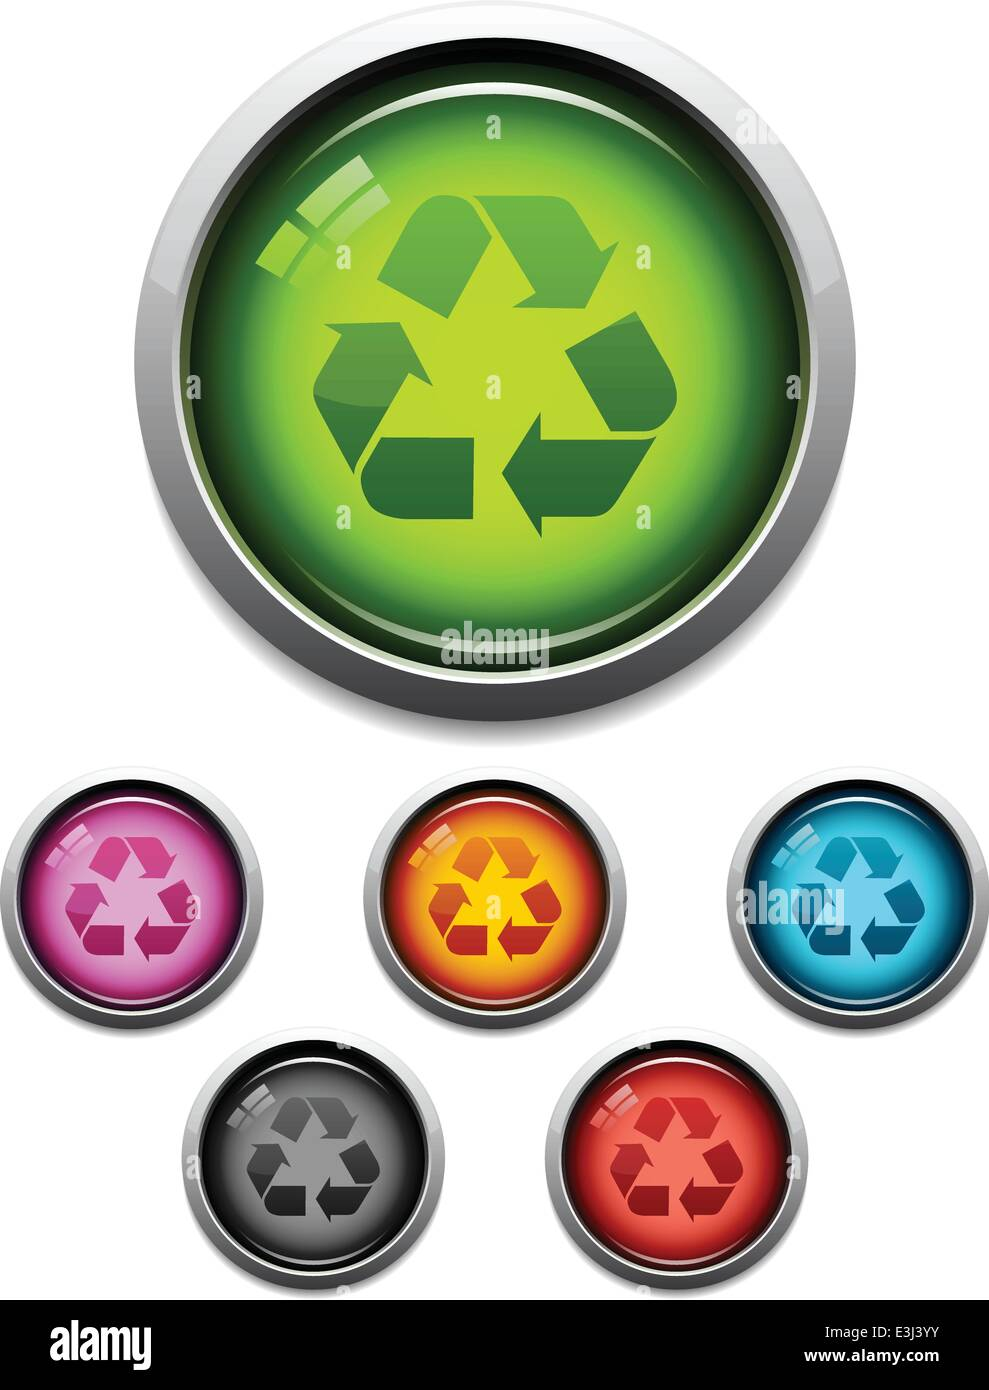 Glossy recycle symbol button icon set in 6 colors stock vector art glossy recycle symbol button icon set in 6 colors biocorpaavc